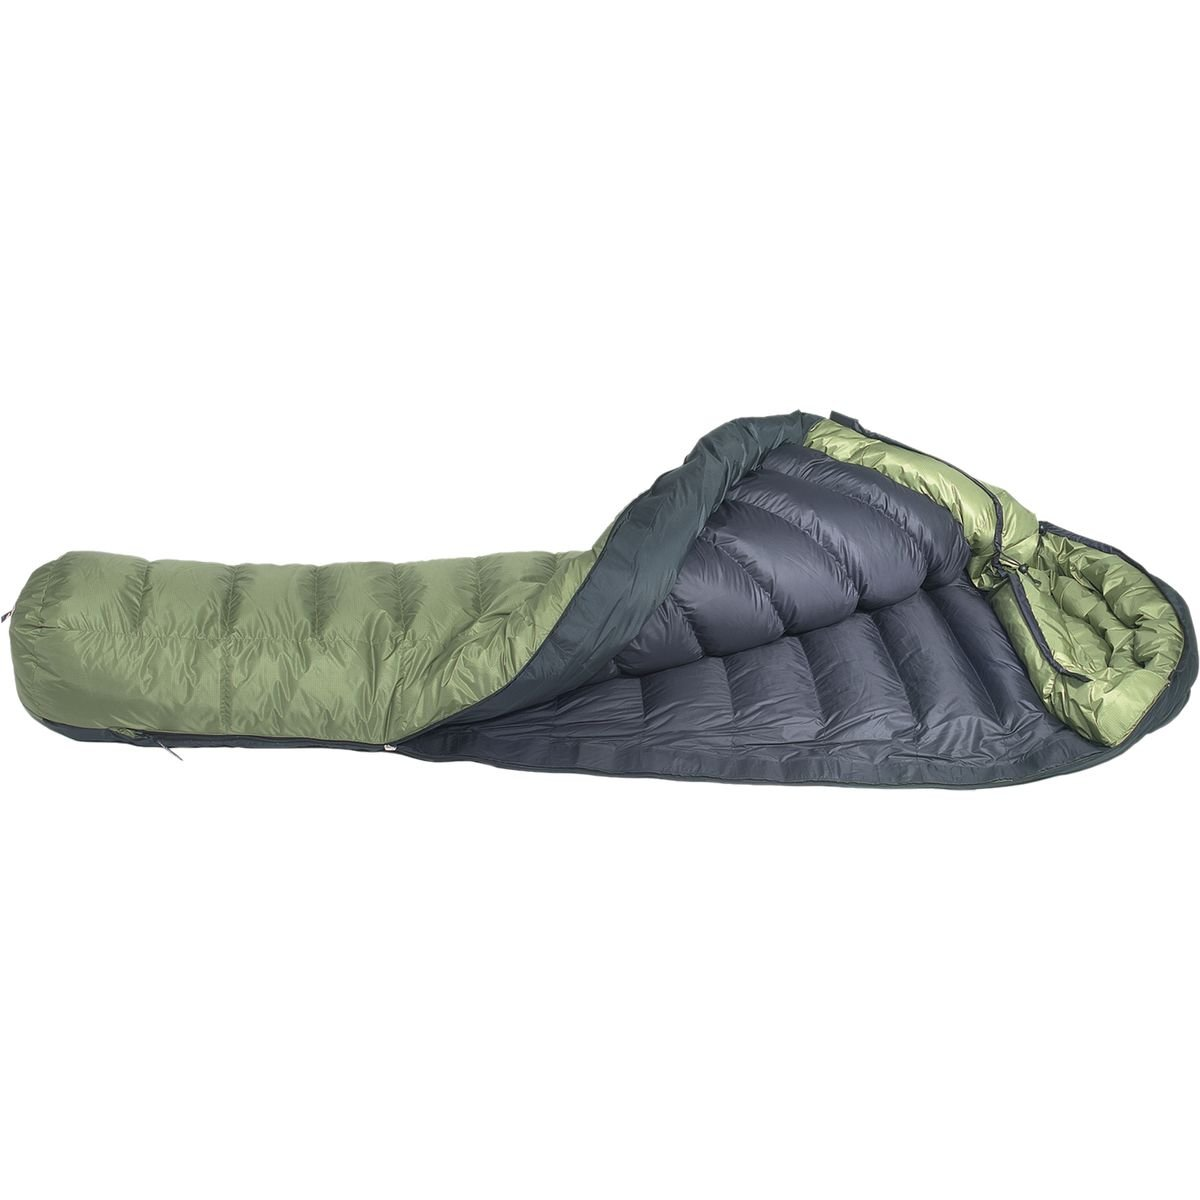 An image of Western Mountaineering Lynx Gore Windstopper Sub Zero Degree Down Sleeping Bag